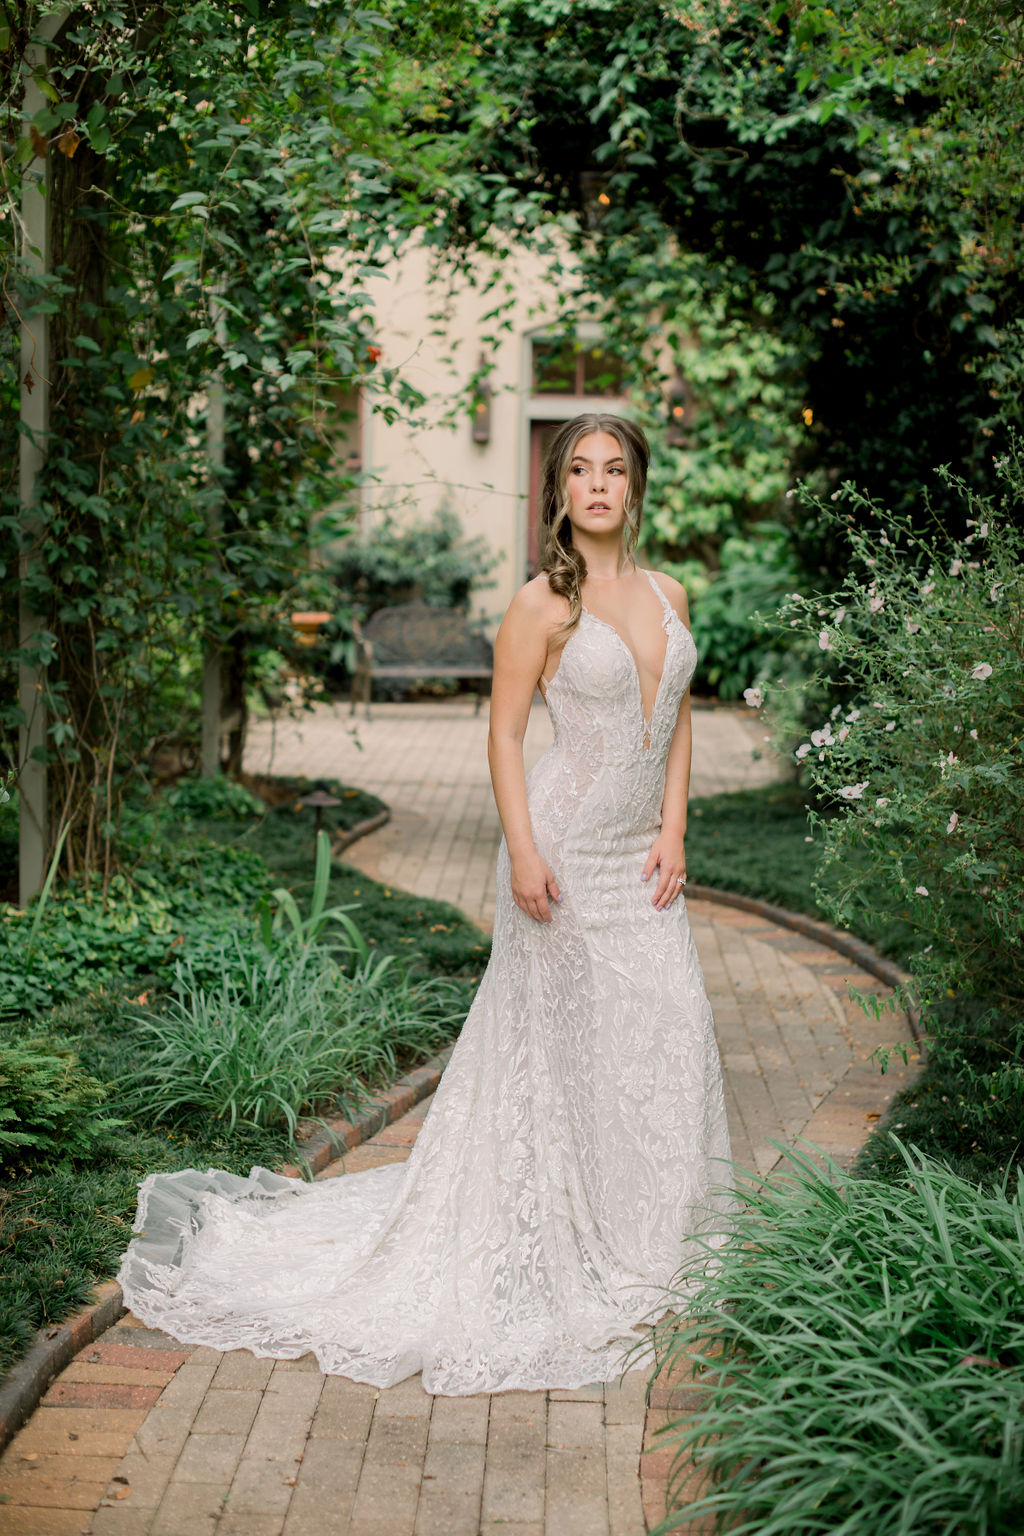 Bride wearing bridal gown with floral motif from I Do Bridal Couture. Photo: Emily Songer Photography